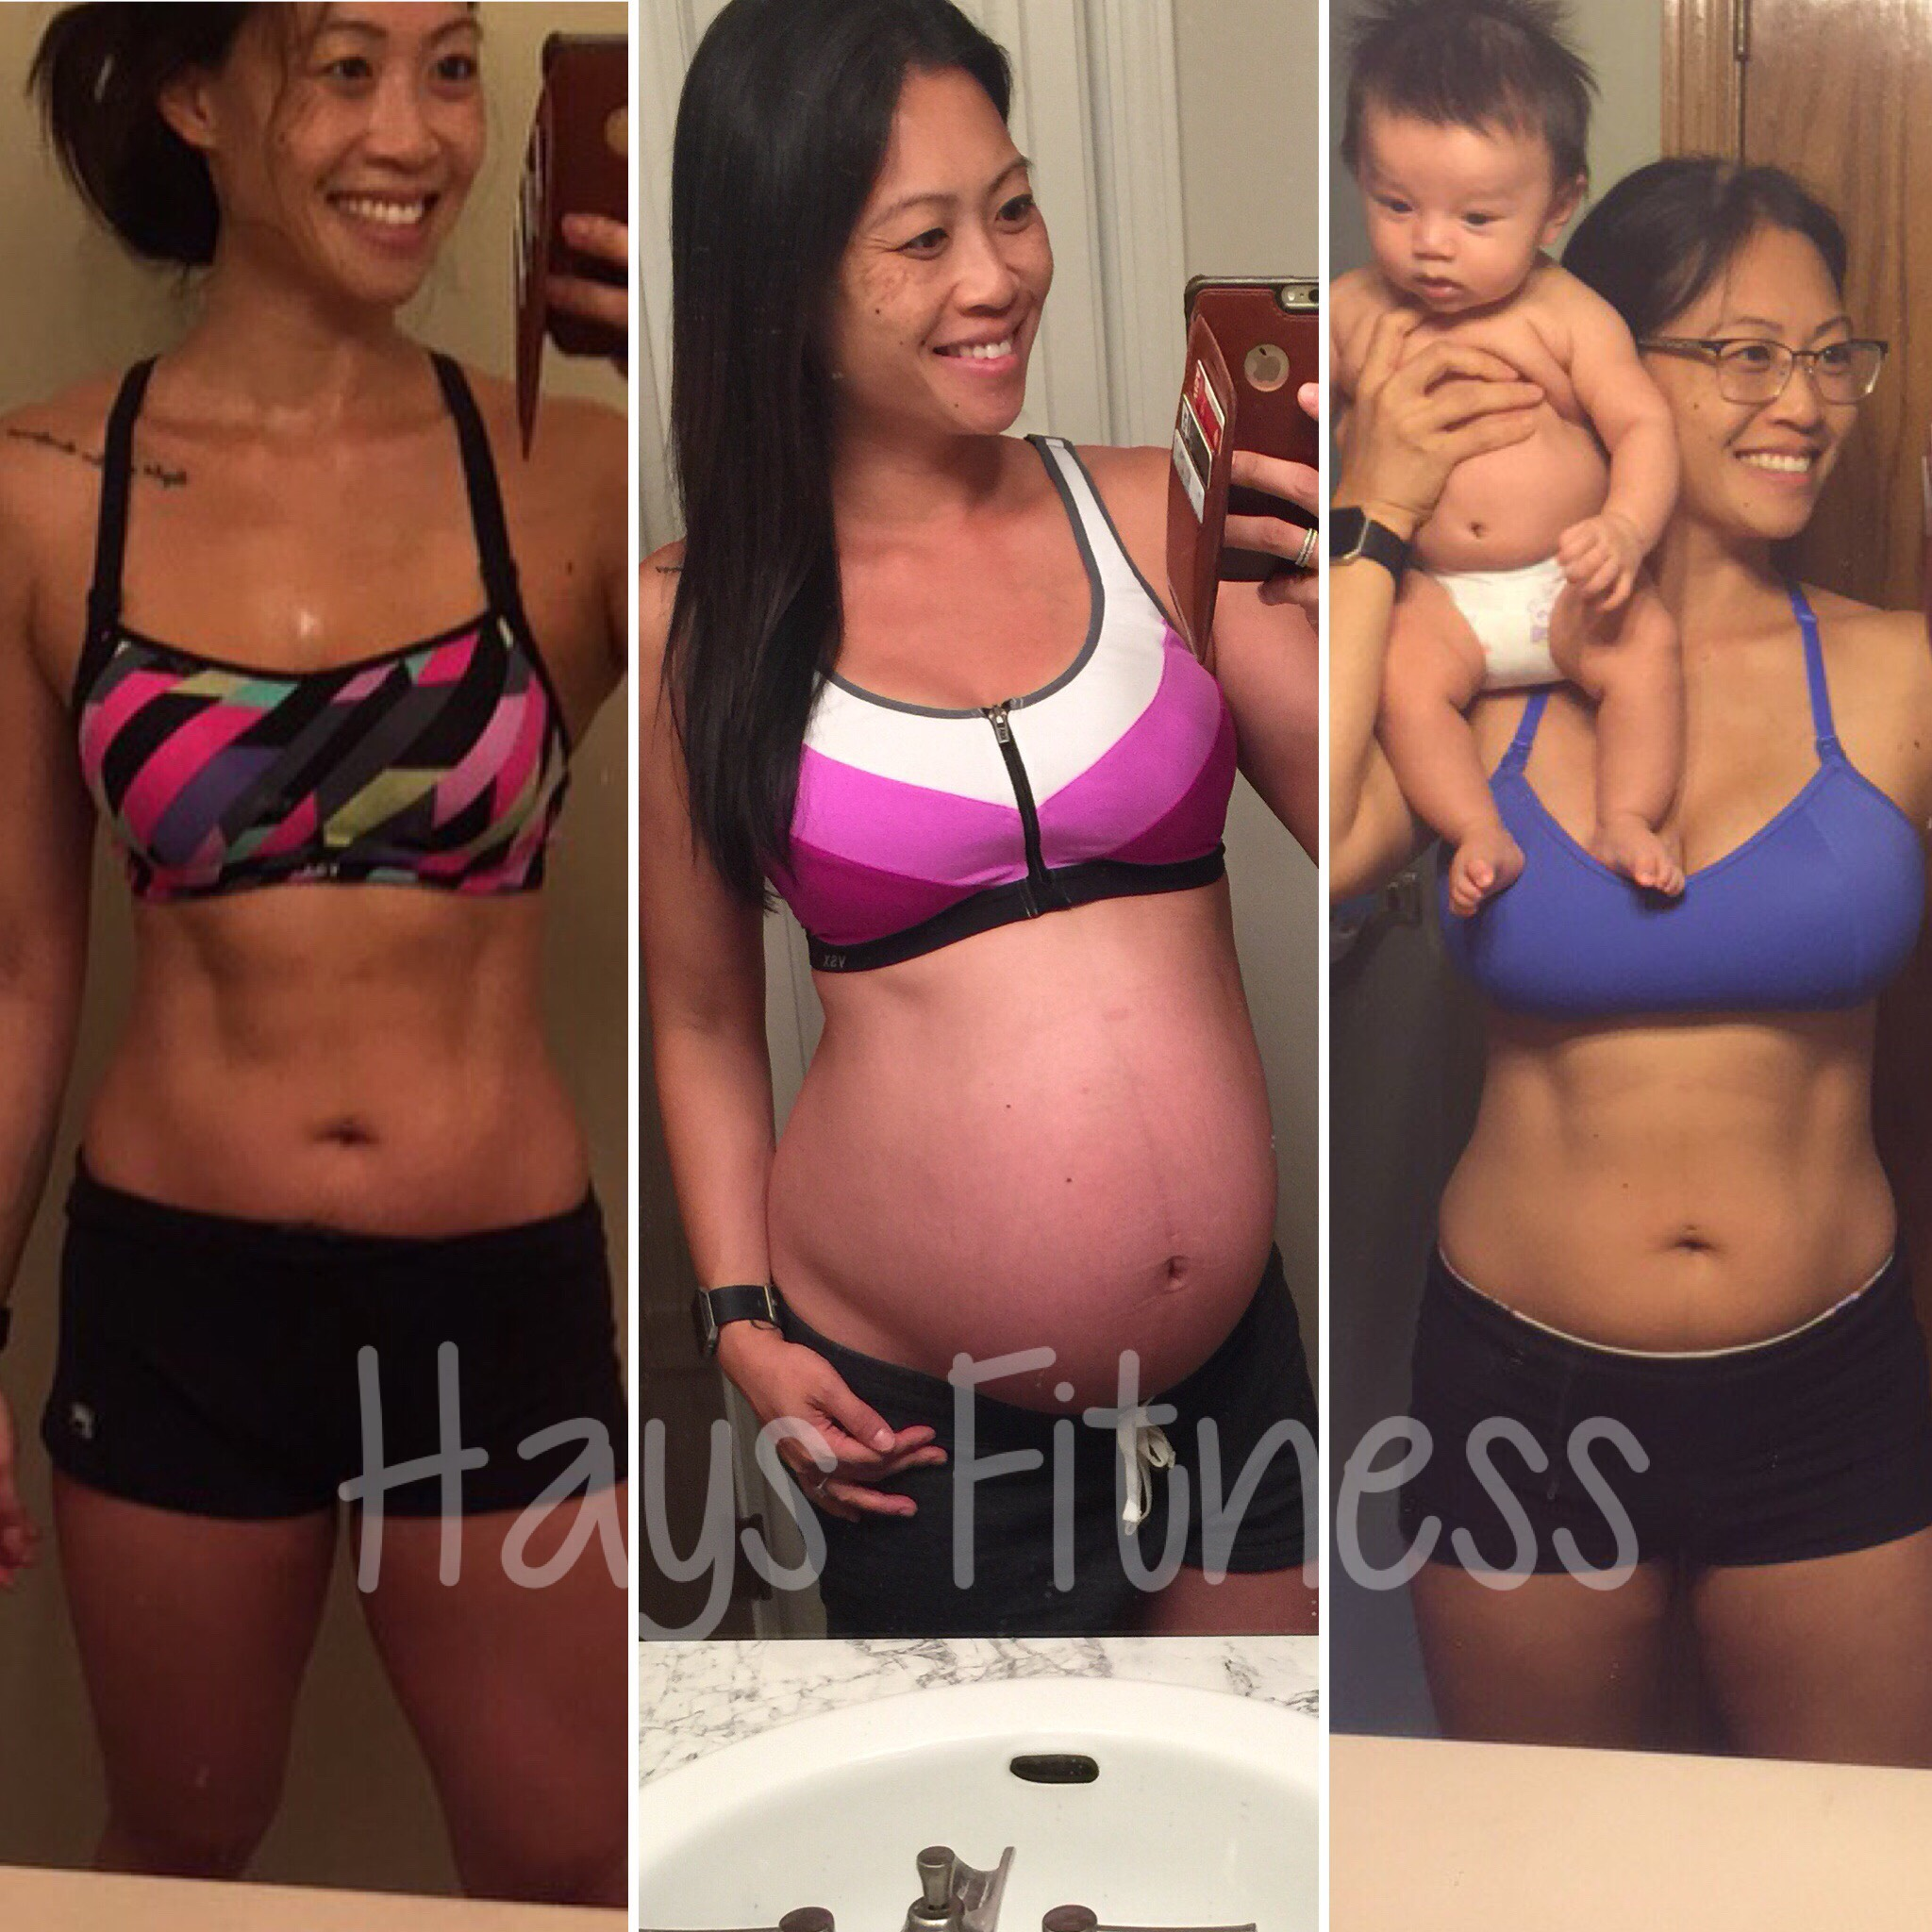 The picture on the left (October 2016) was at the end of my cut at 144 lbs. It's also when I found out I was pregnant with my second child. The middle picture is at 40 weeks pregnant at 171 lbs., where I tracked my macros the entire time and reverse dieted. The far right picture is the most current (September 2017) at 2 months postpartum at 149 lbs., consuming over 2800 calories a day to keep my milk supply up.